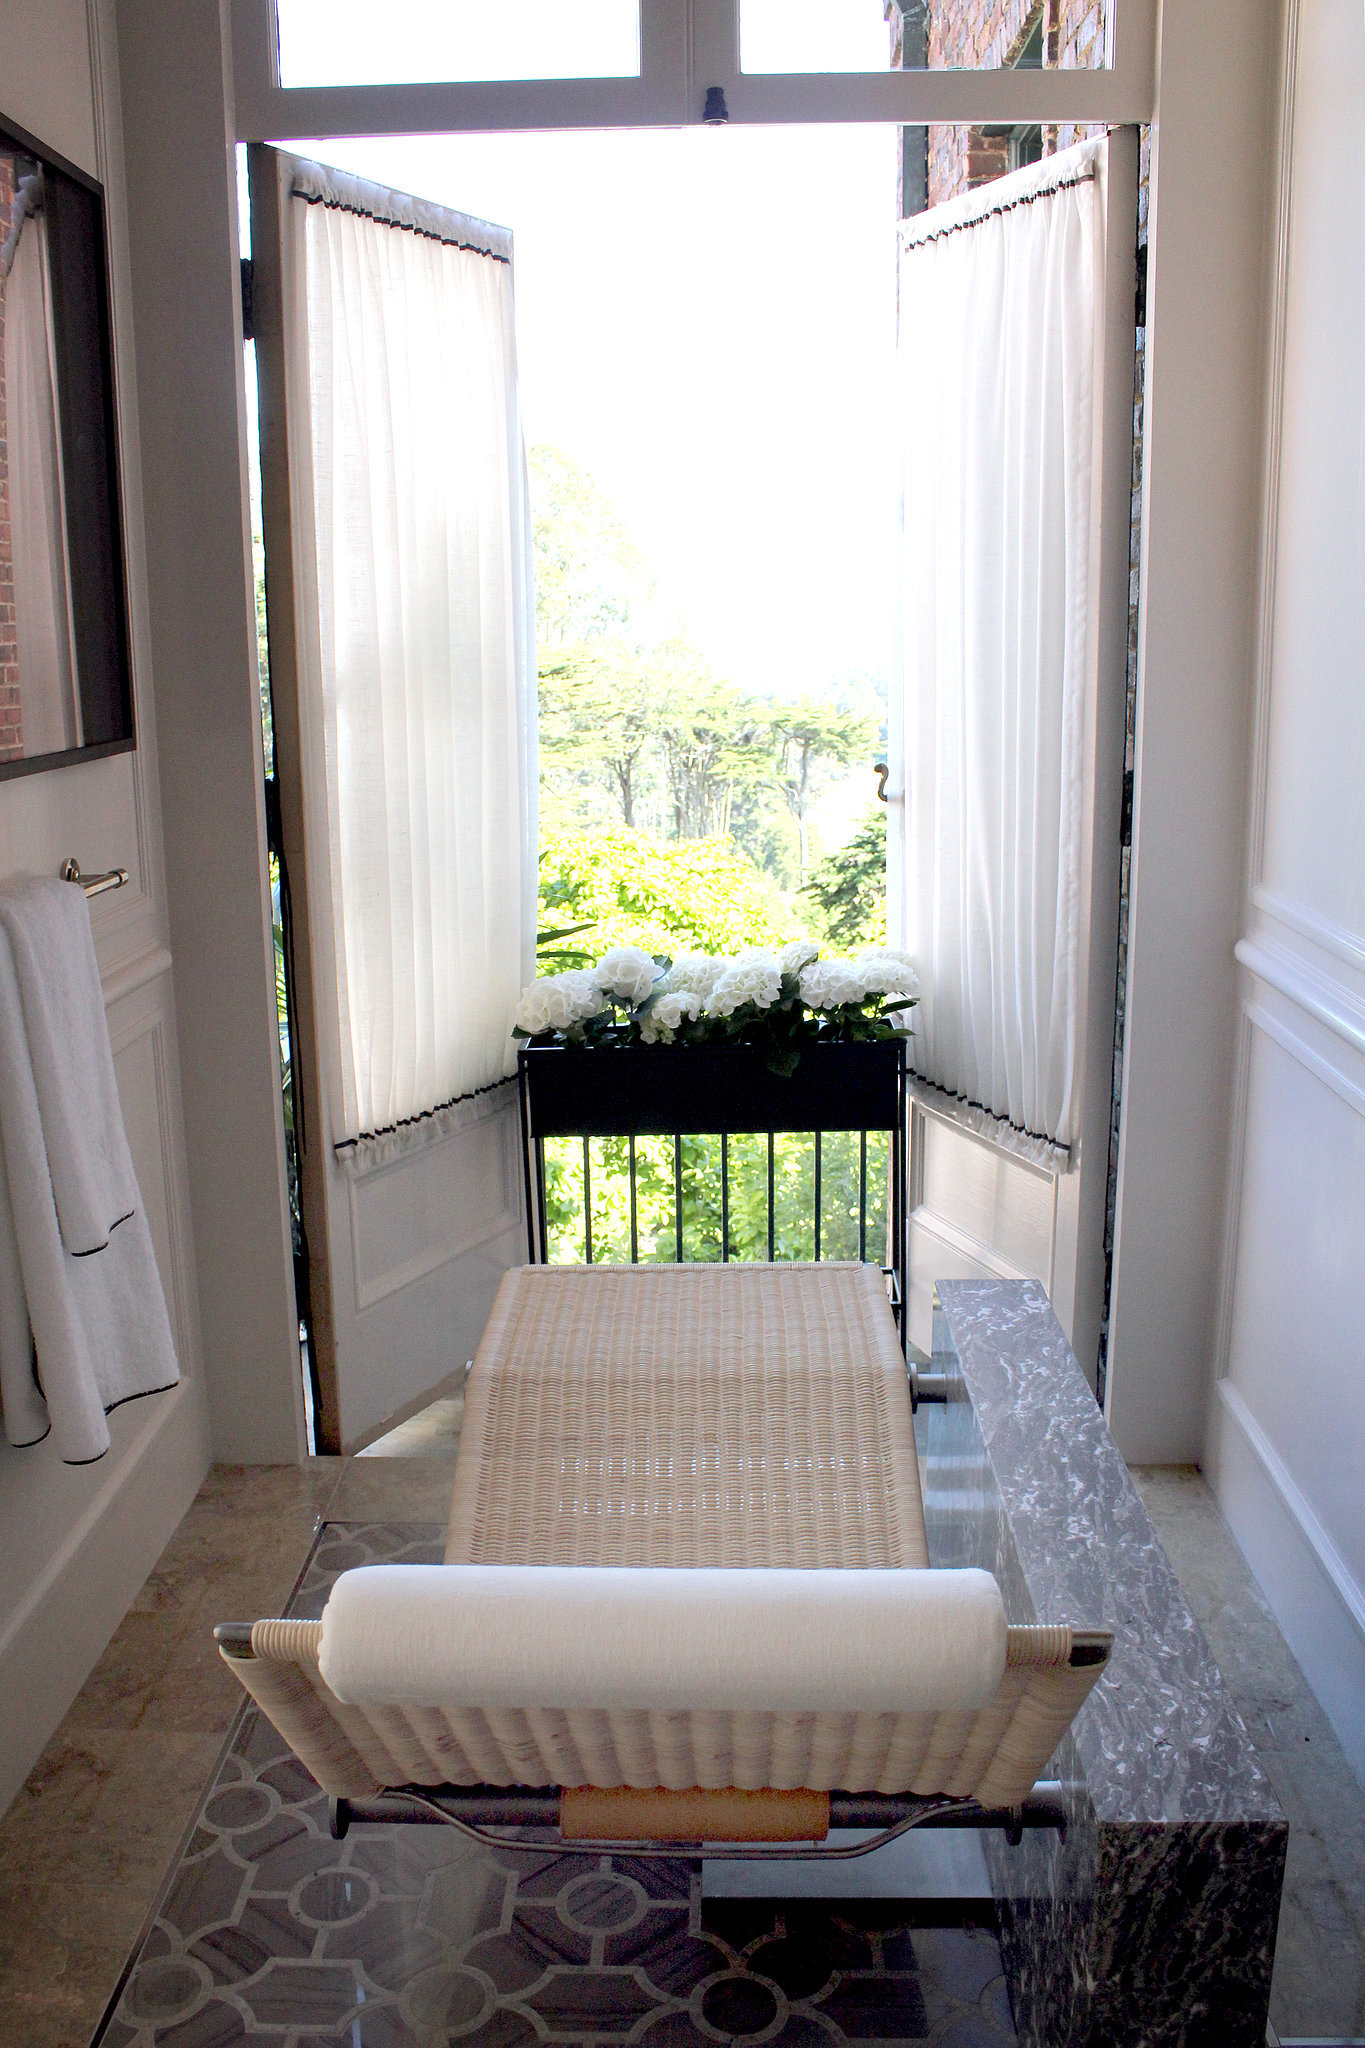 Oh, and did we mention the views from the bathroom? That chaise lounge is to die for.